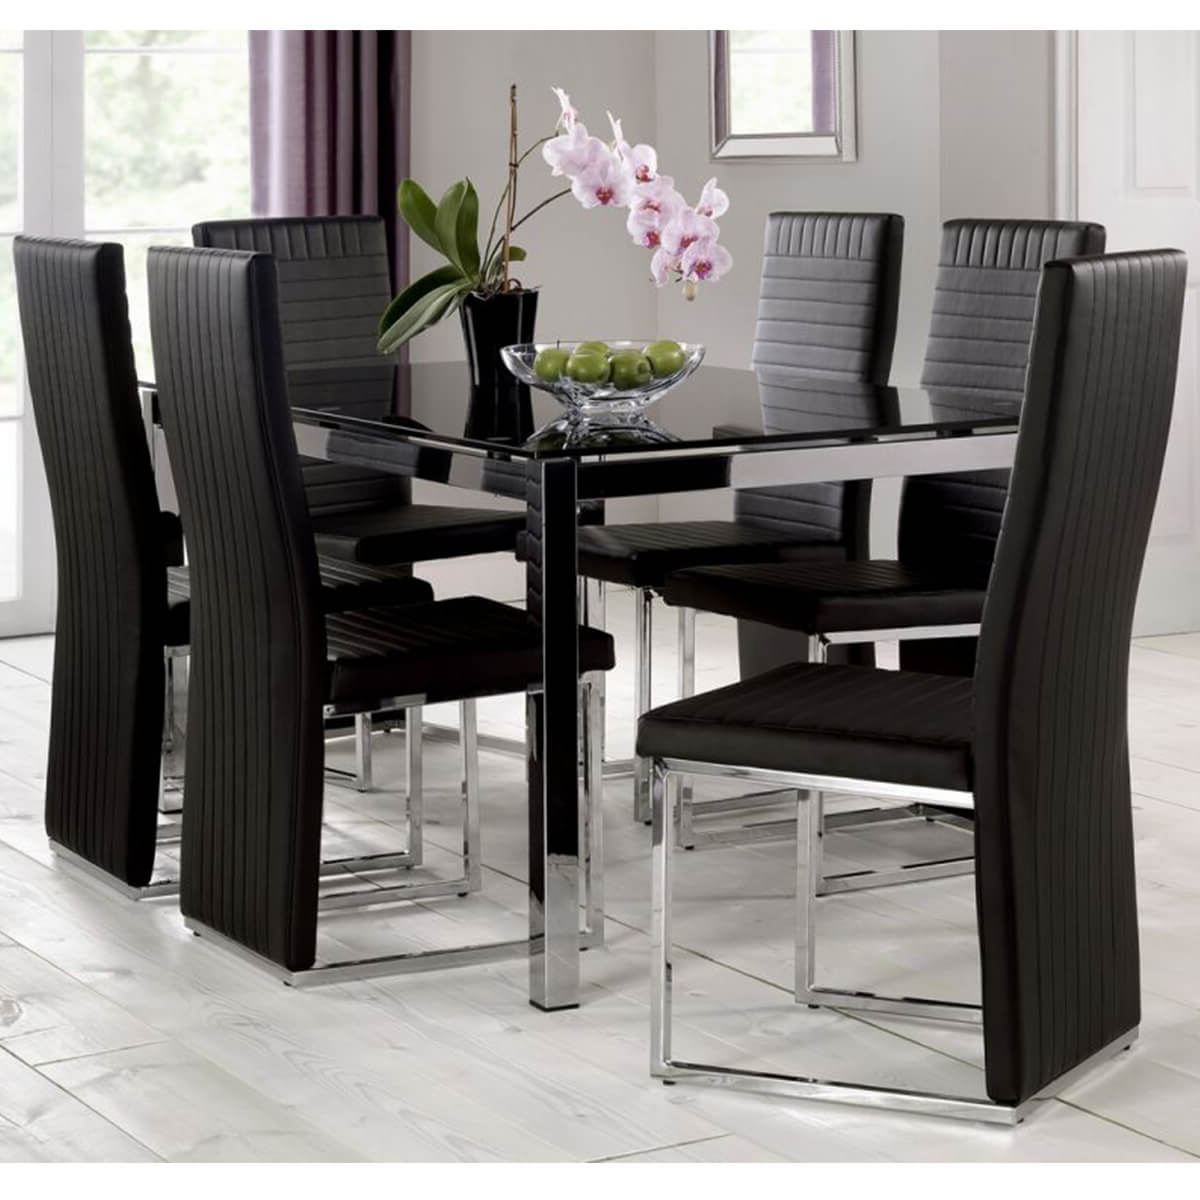 6 Seater Retangular Wood Contemporary Dining Tables Inside Most Current Tempo Black Dining Table With Black Chairs (View 6 of 30)